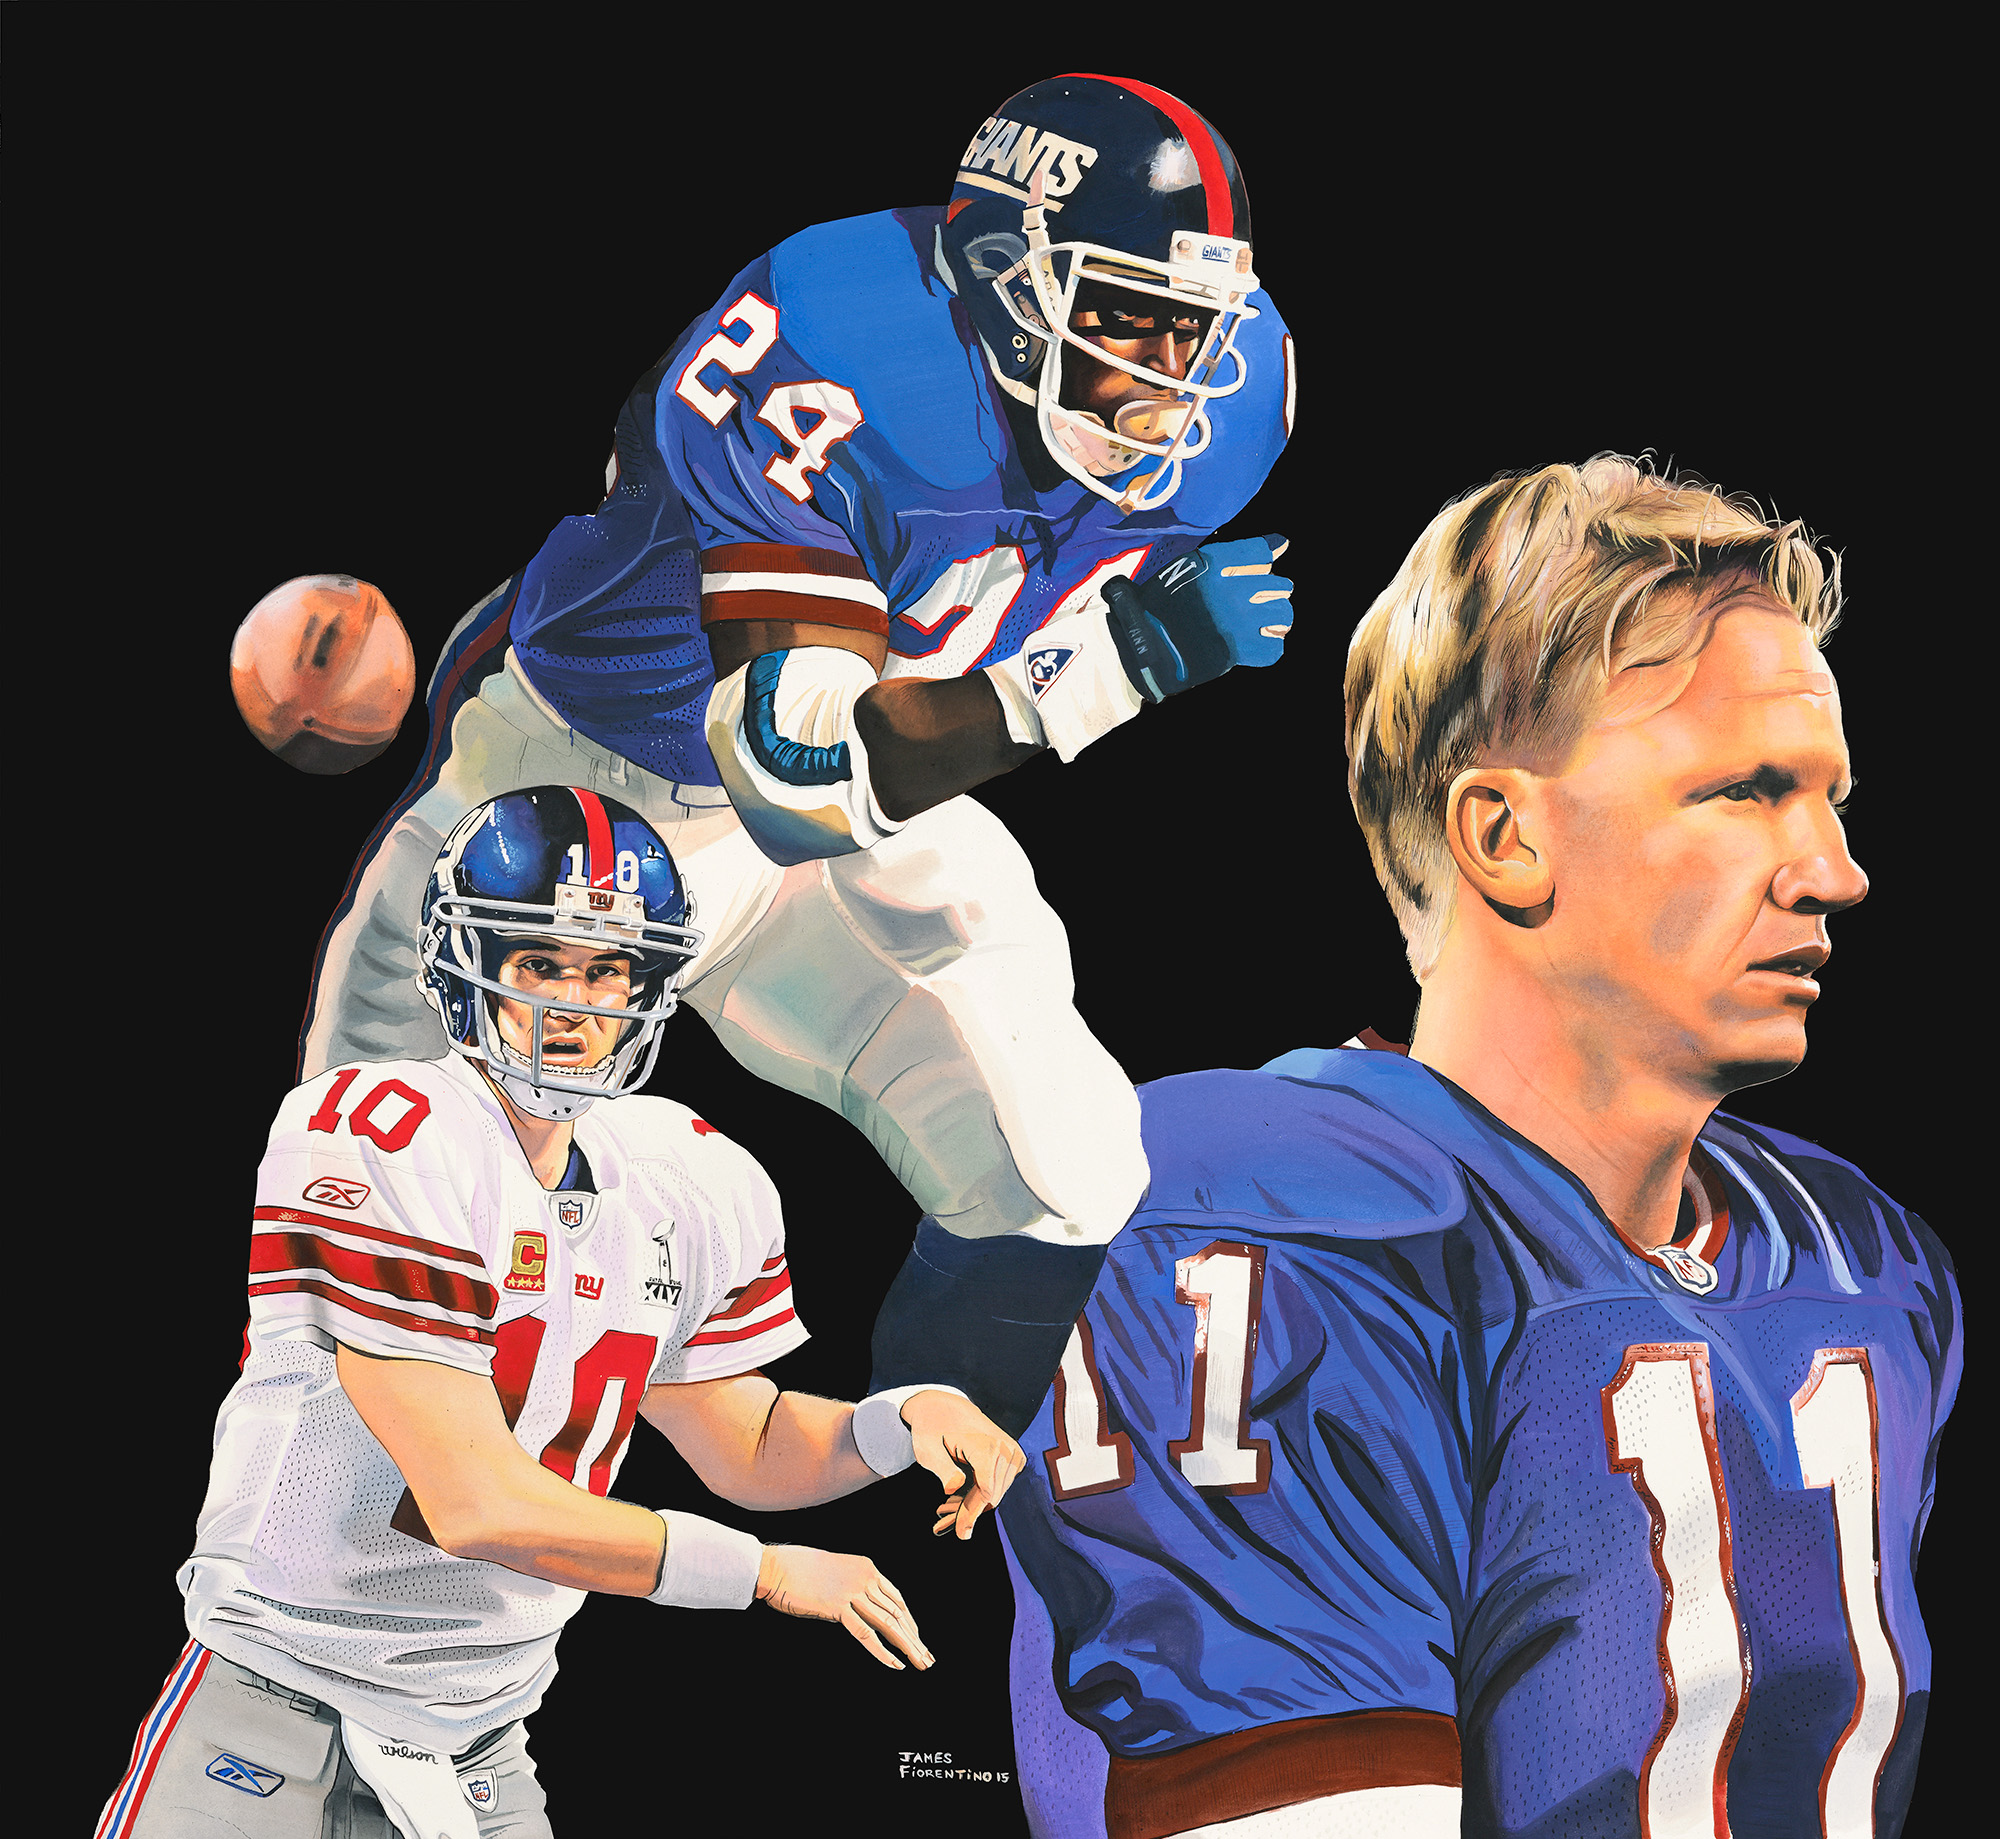 Giants MVP - Autographed by Simms, Anderson and Manning (36 x 36)Call 908-782-8509 For Pricing